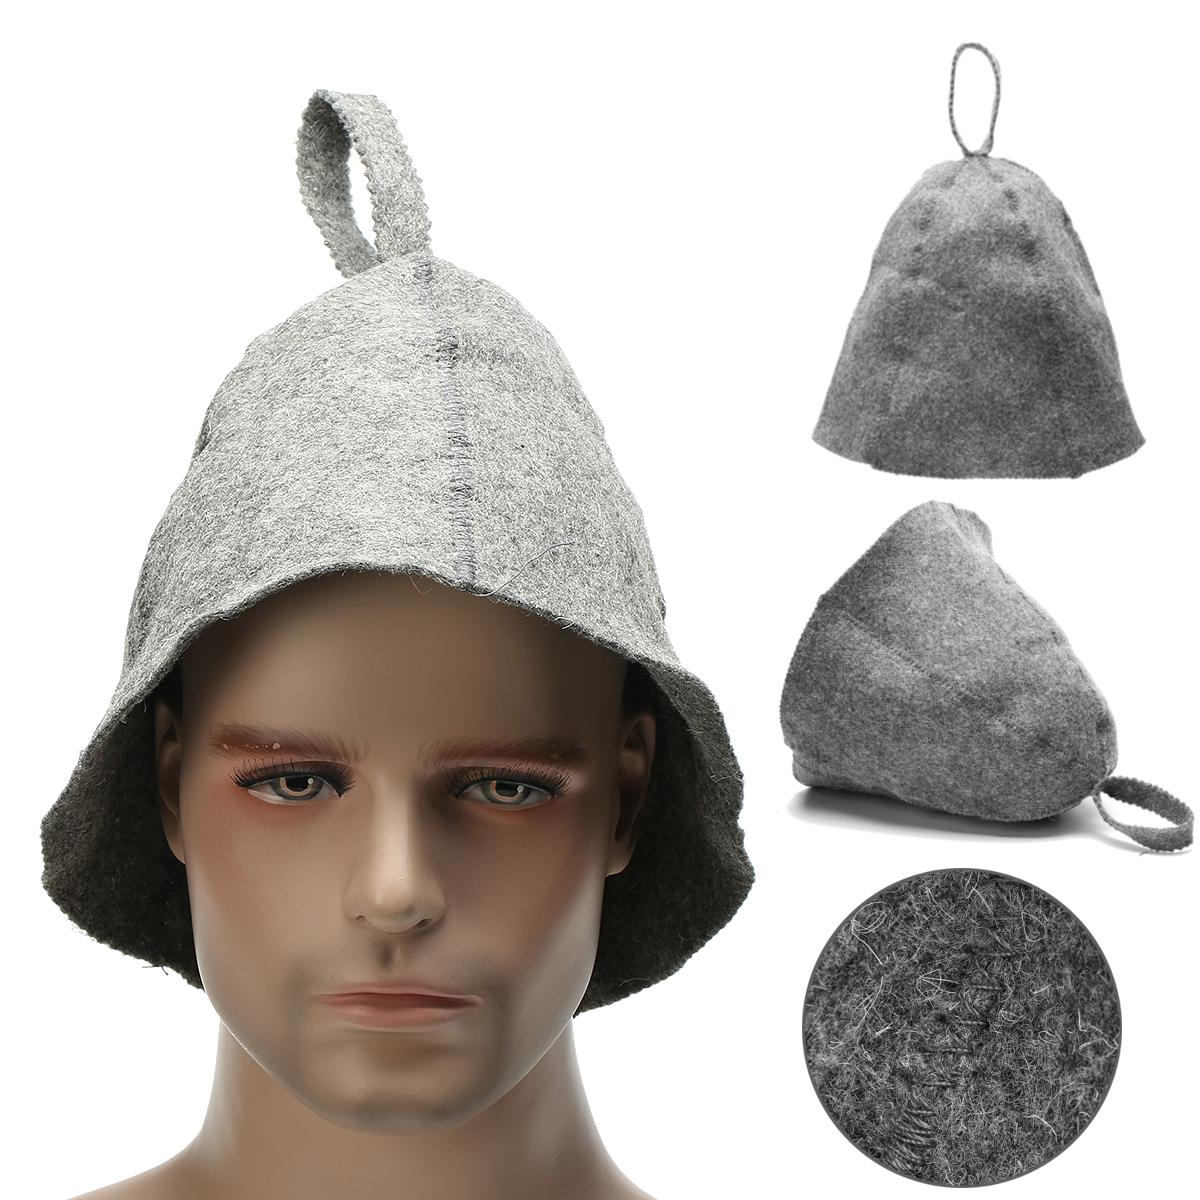 77a525c5a57 grey 100% wool felt sauna hat hair head protect form steam room overheating  at Banggood sold out